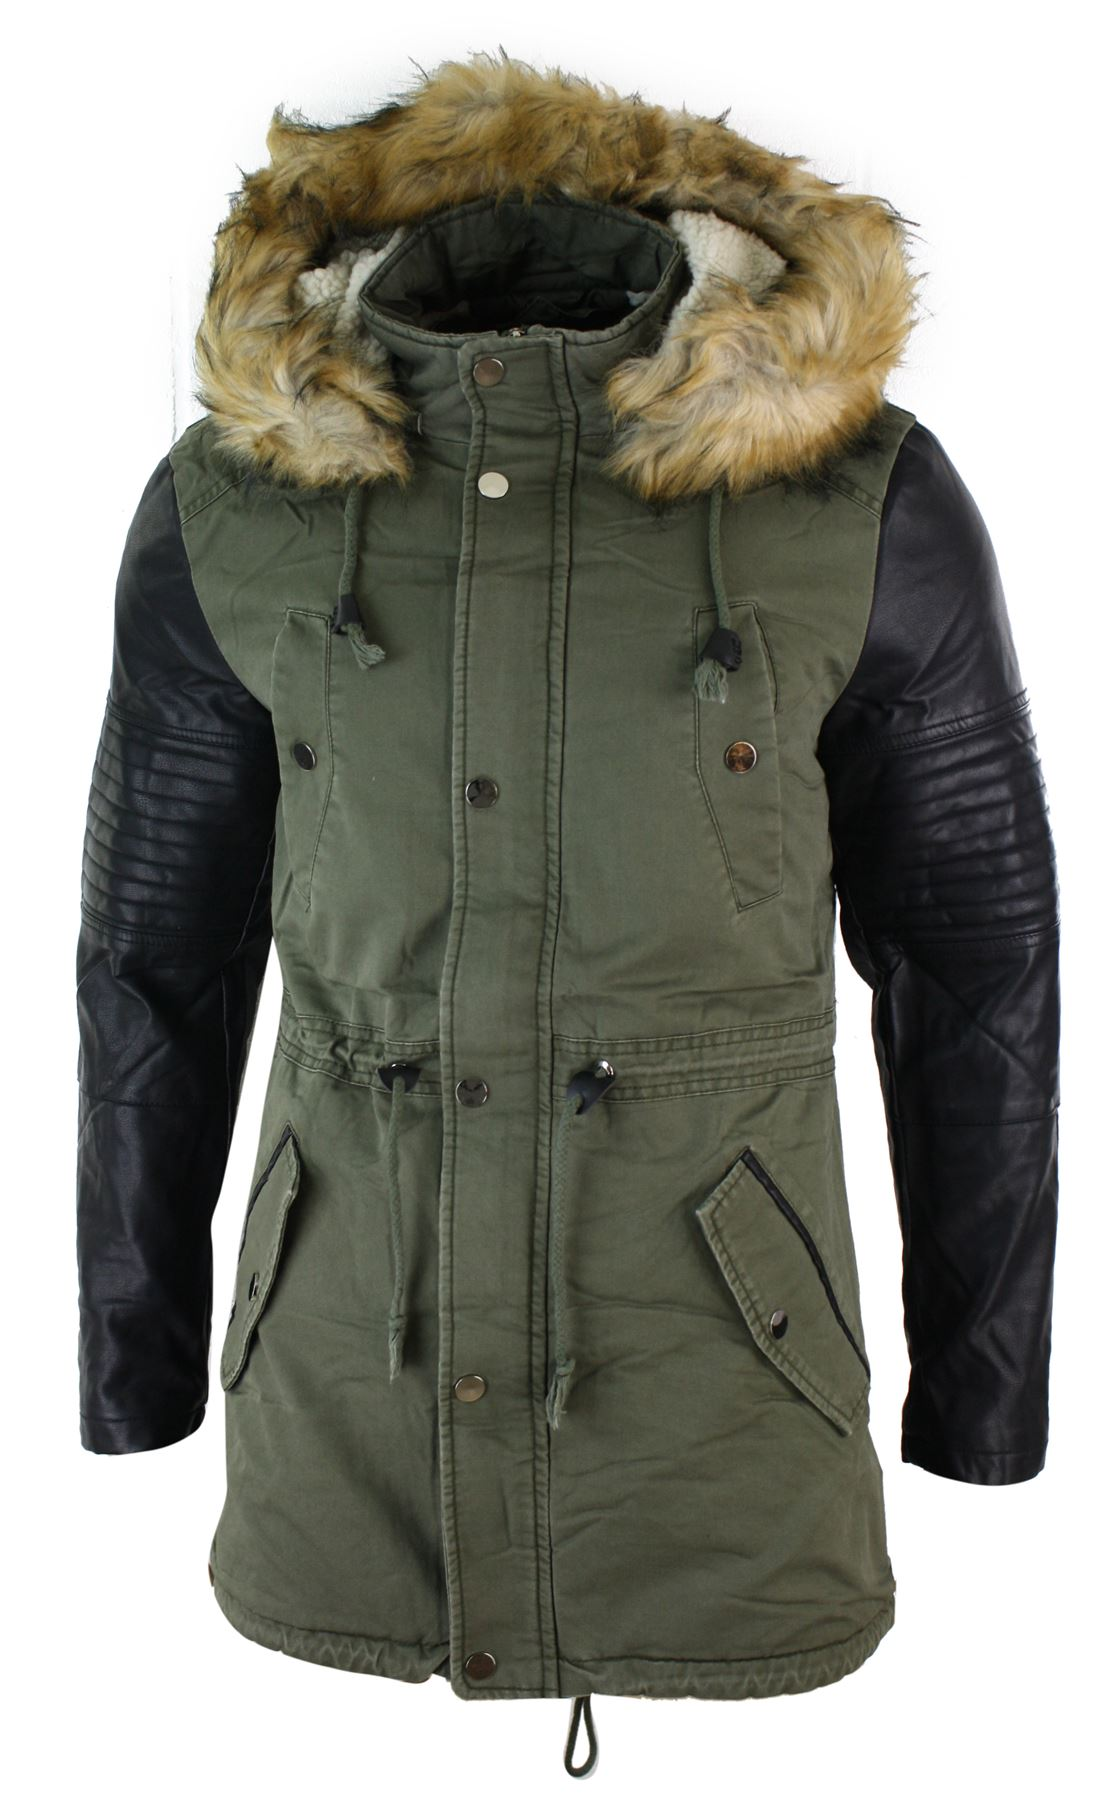 The fishtail parka was first used by the U.S. Army in to help Rothco M Fishtail Parka. by Rothco. Alpha Industries Men's N-3B Slim-Fit Parka Coat with Removable Faux-Fur Hood Trim. by Alpha Industries. $ Converse Mens Rubber Fishtail Parka. by Converse. $ $ 89 99 Prime. FREE Shipping on eligible orders.